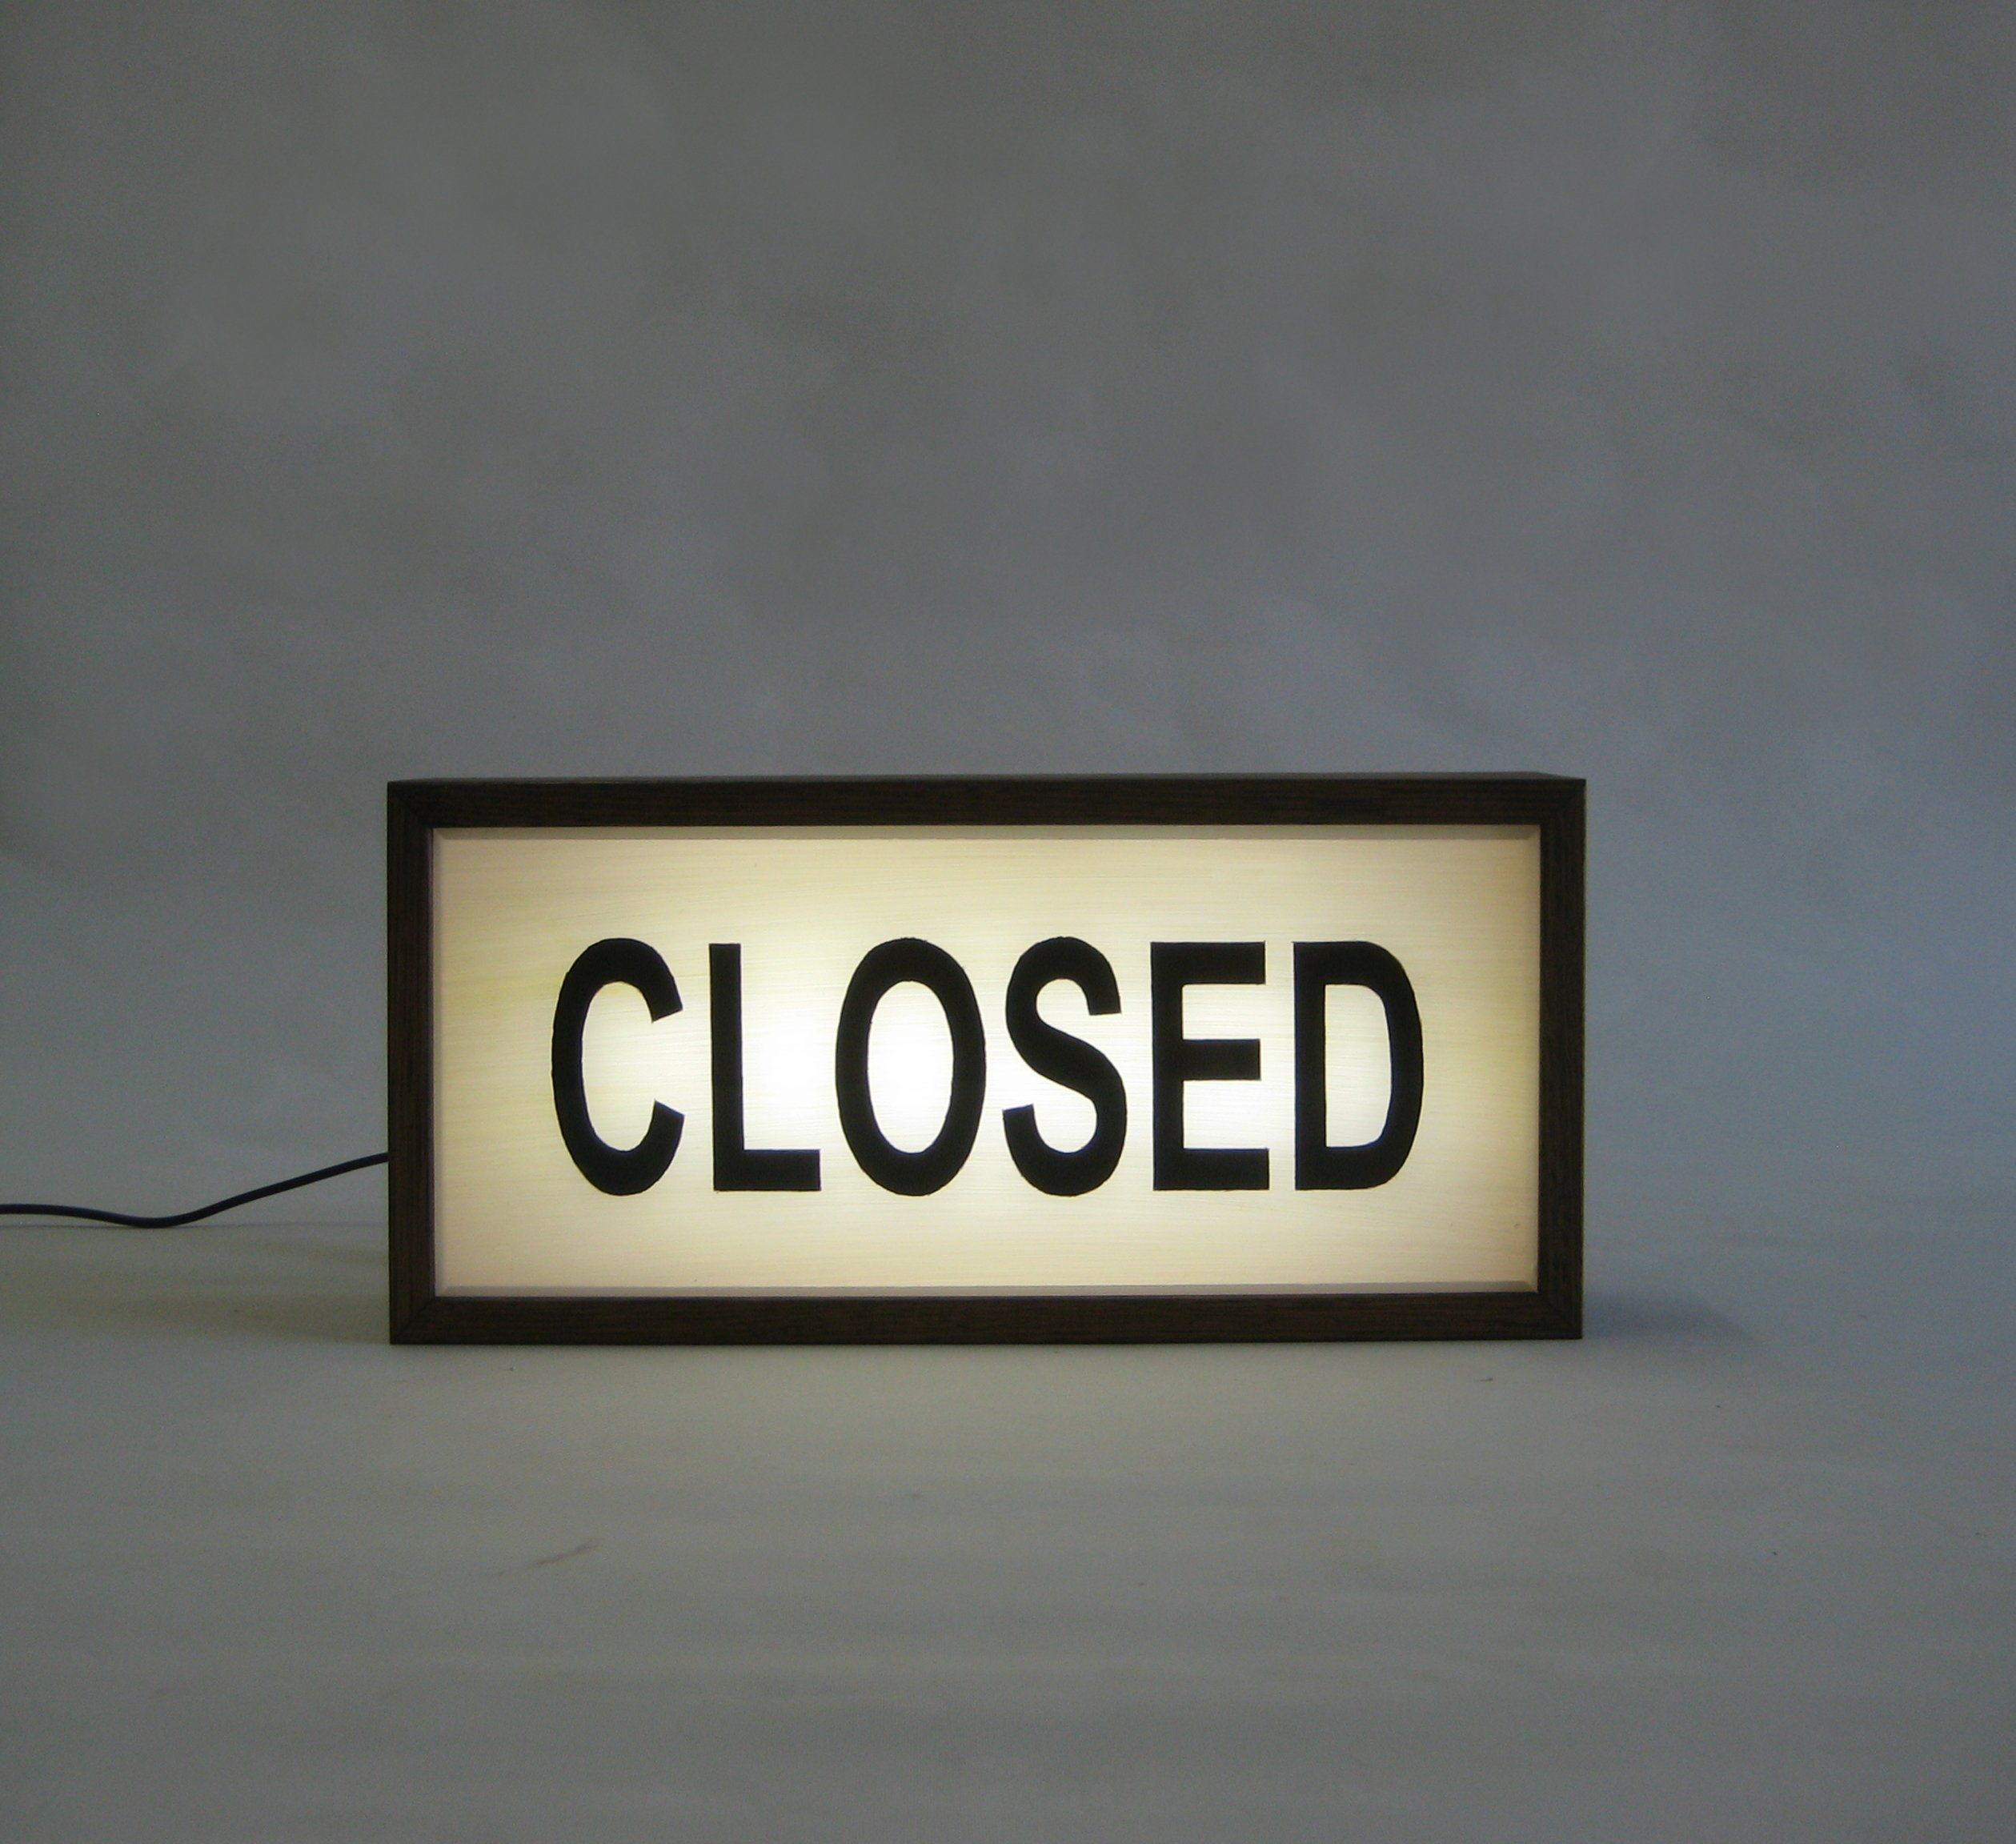 Closed Wooden Lightbox Sign Handcrafted Lighted Hand Painted Signs Light Up Signage Business Window Sign 35 X 16 Cm Timber Light Box Light Box Sign Light Box Wooden Light